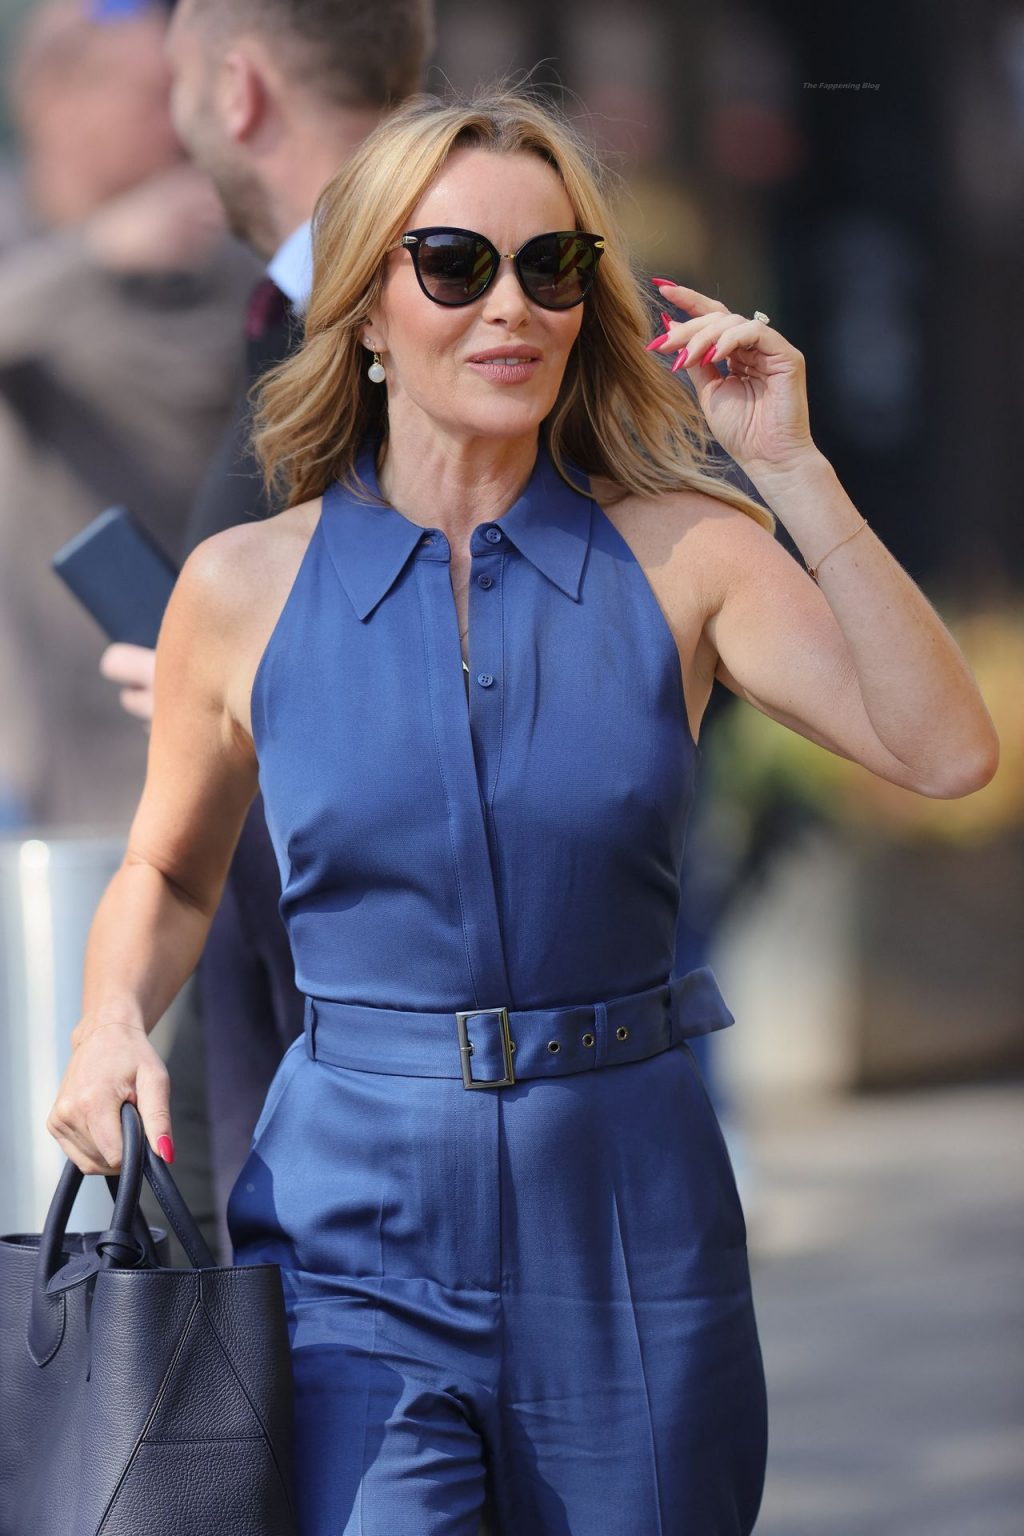 Amanda Holden Looks Chic In a Blue Jumpsuit at Heart Radio (58 Photos)